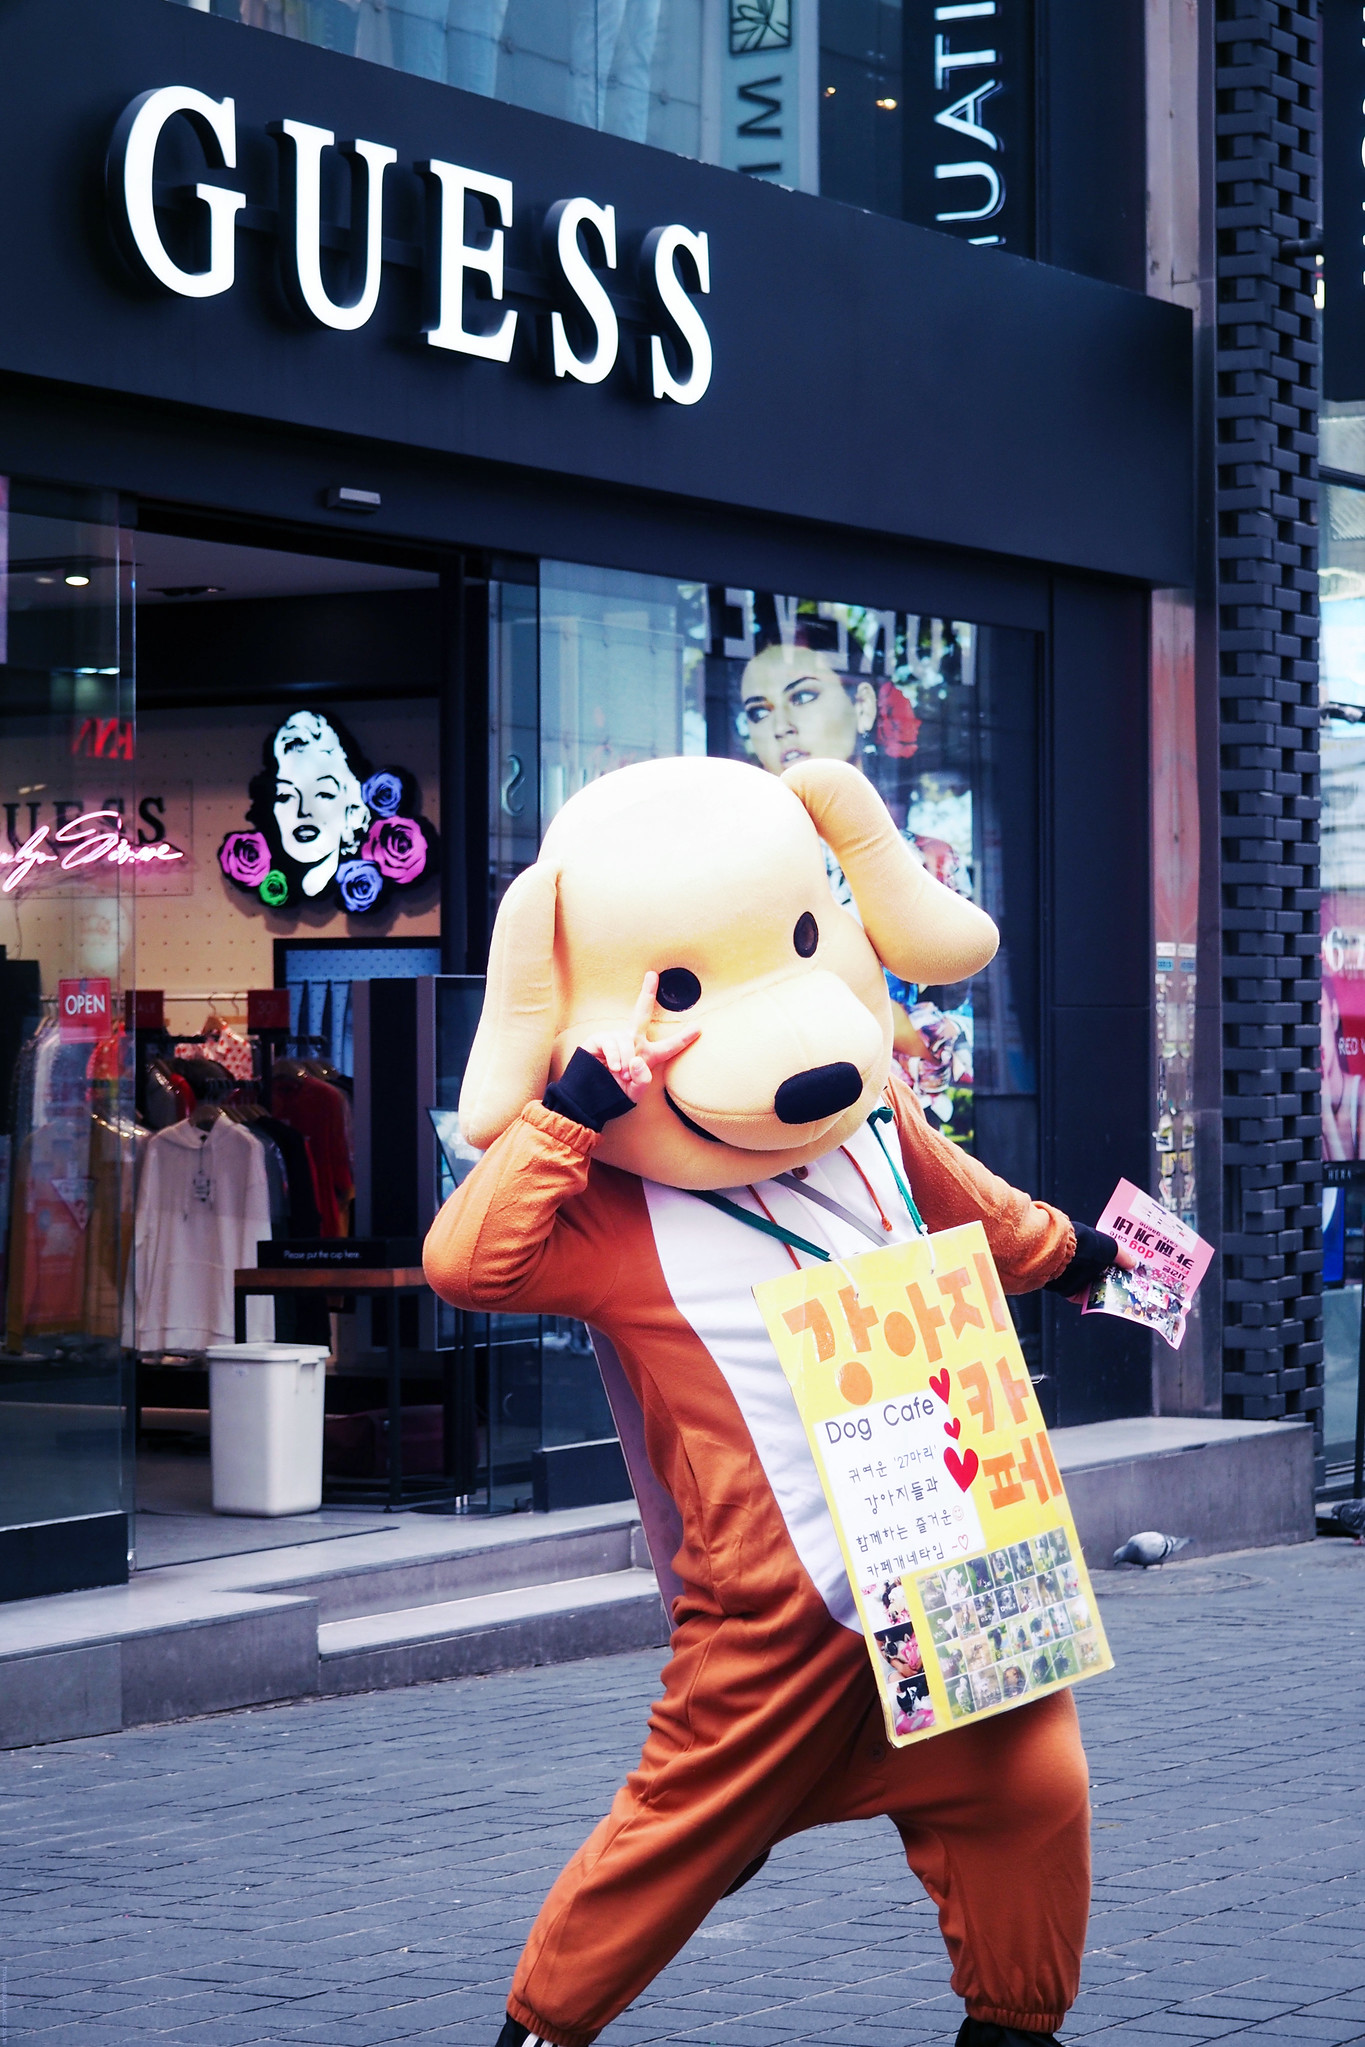 Person dressed as a dog seoul south korea_effected